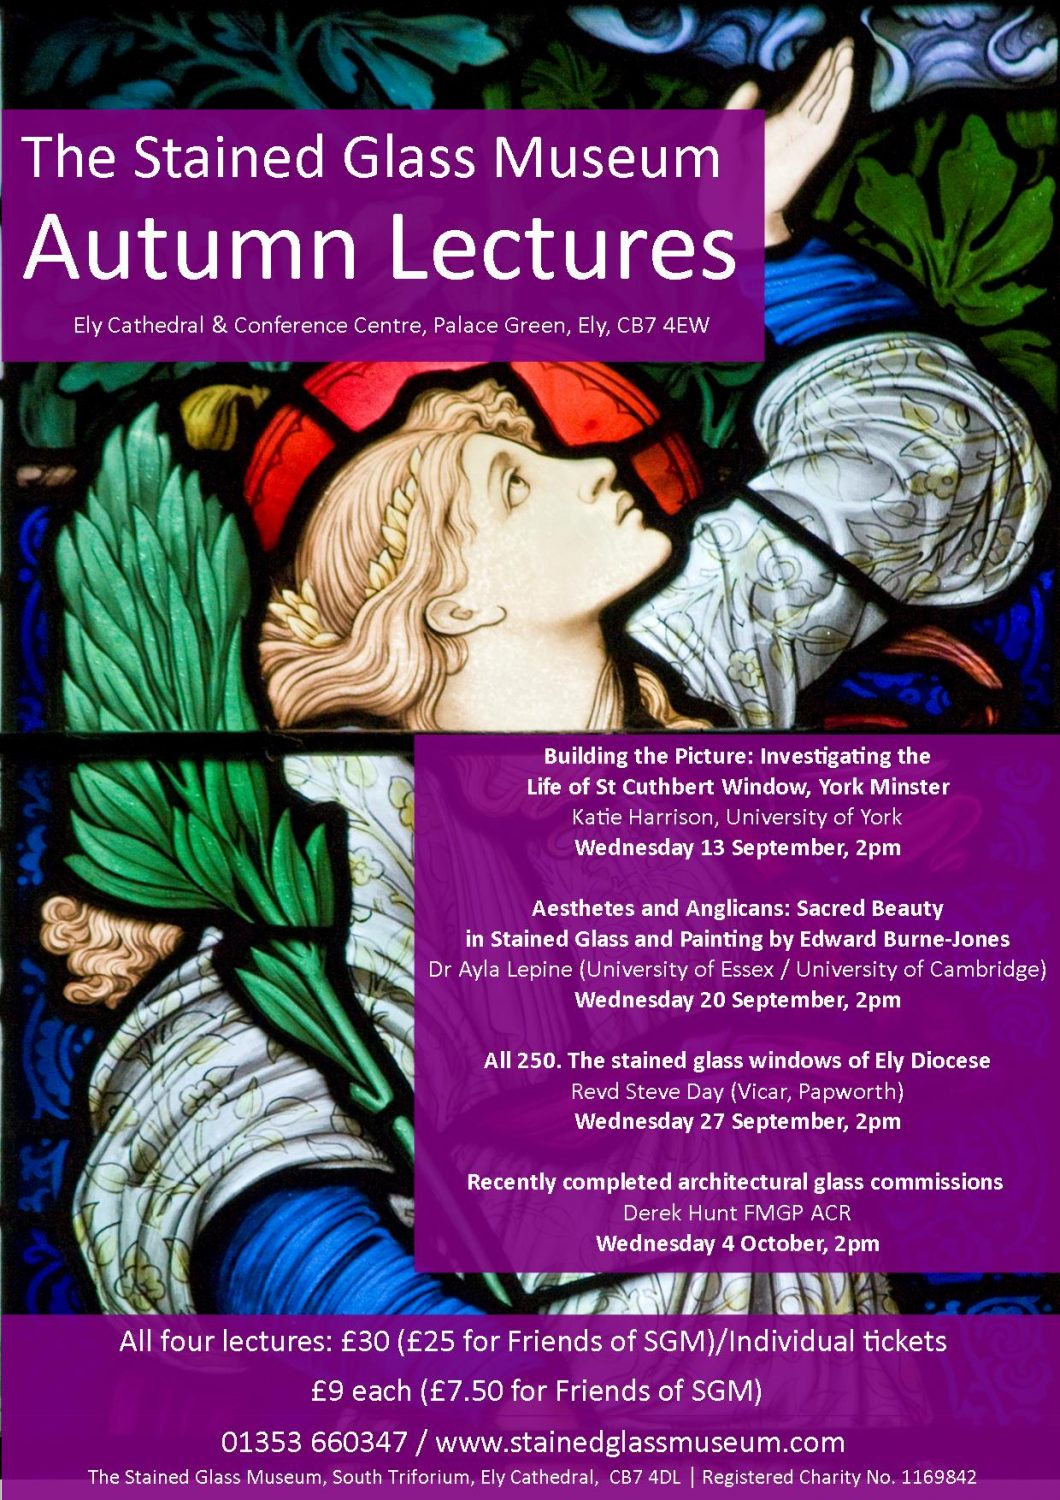 Autumn 2017 Lectures A4 Poster